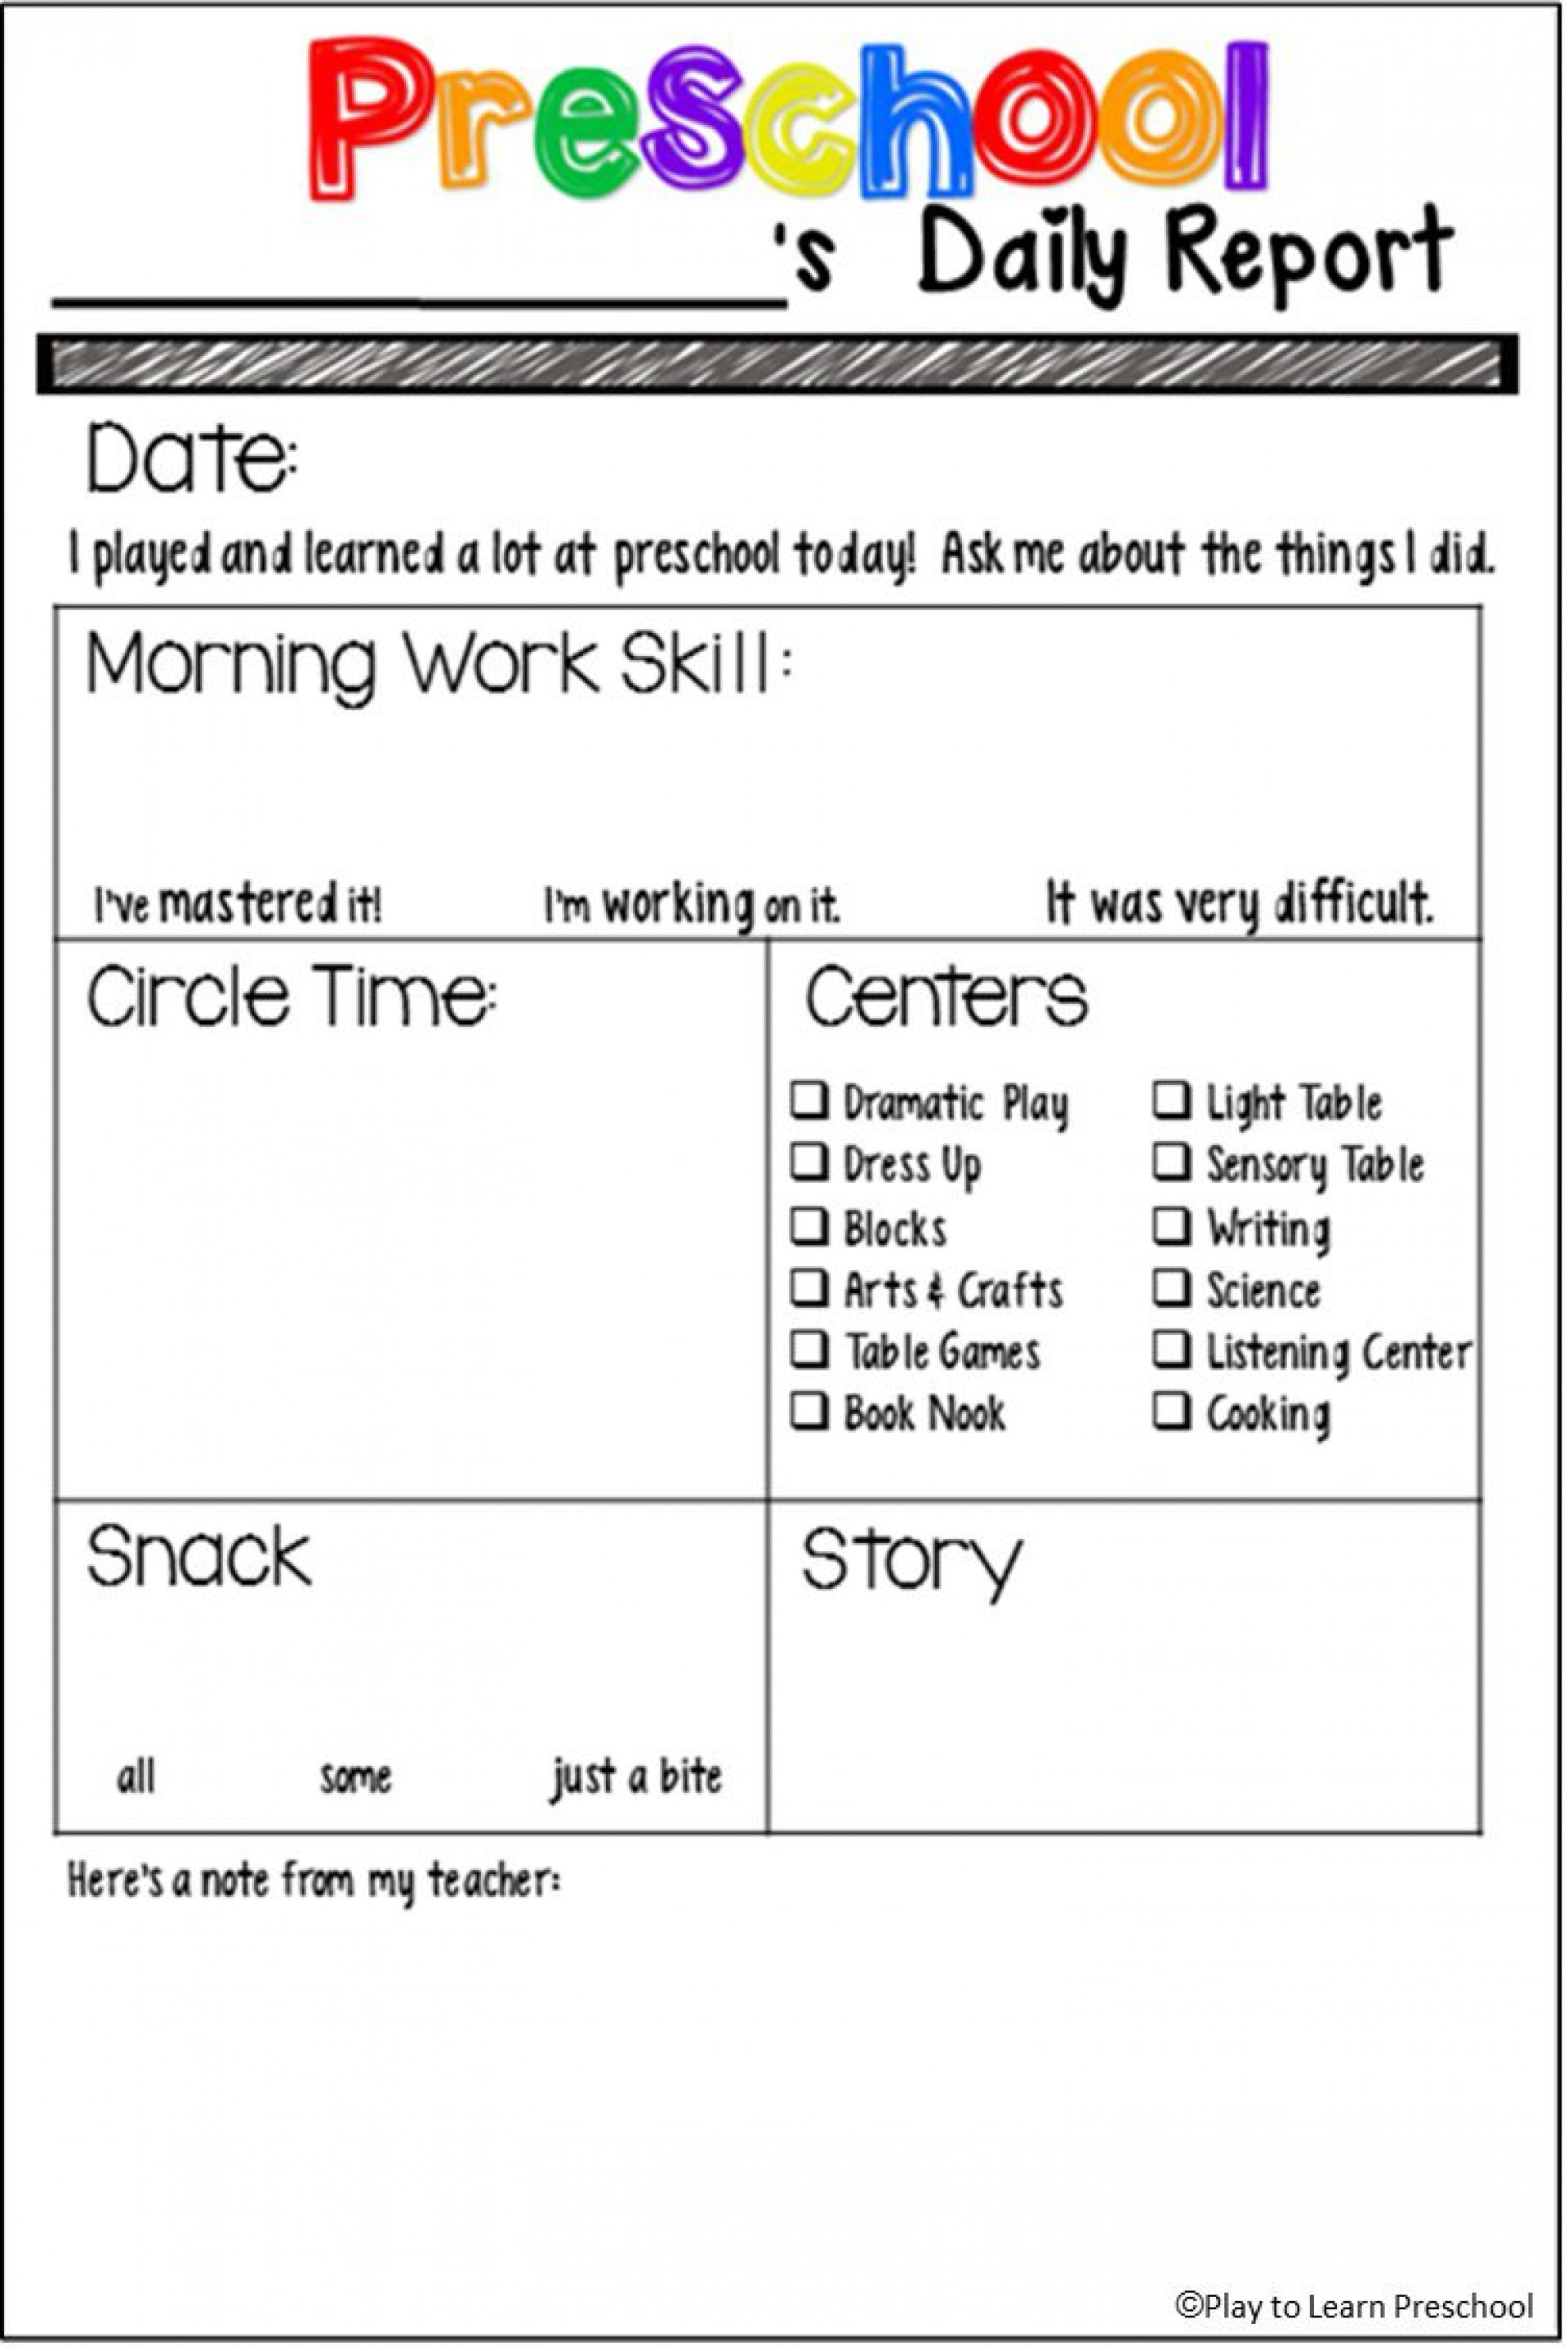 000 Amazing Preschool Daily Report Template Highest Clarity  Form Baby Sheet1920